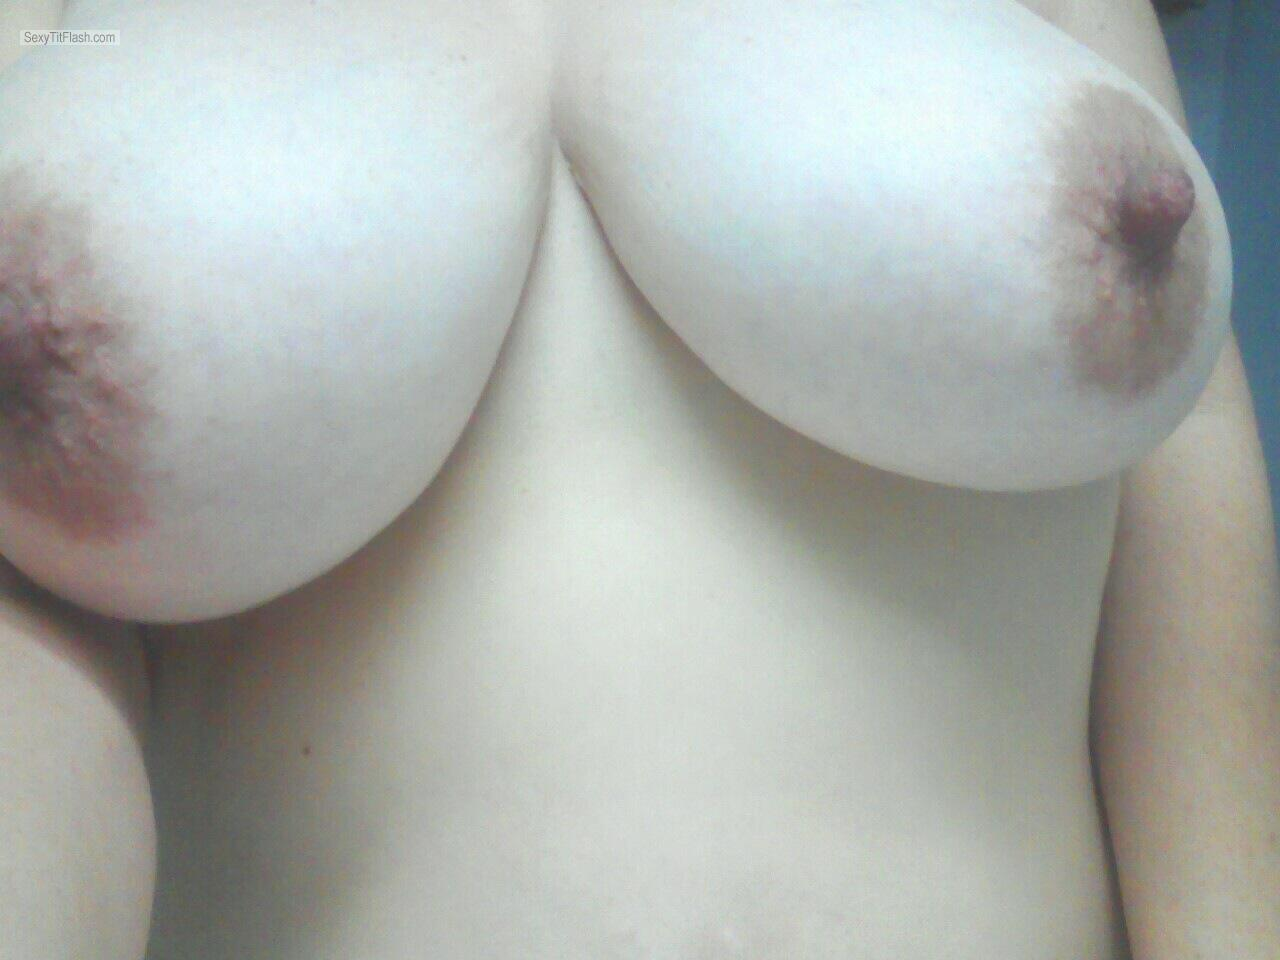 Tit Flash: My Friend's Big Tits (Selfie) - Topless Hot Housewife Houston from United Kingdom